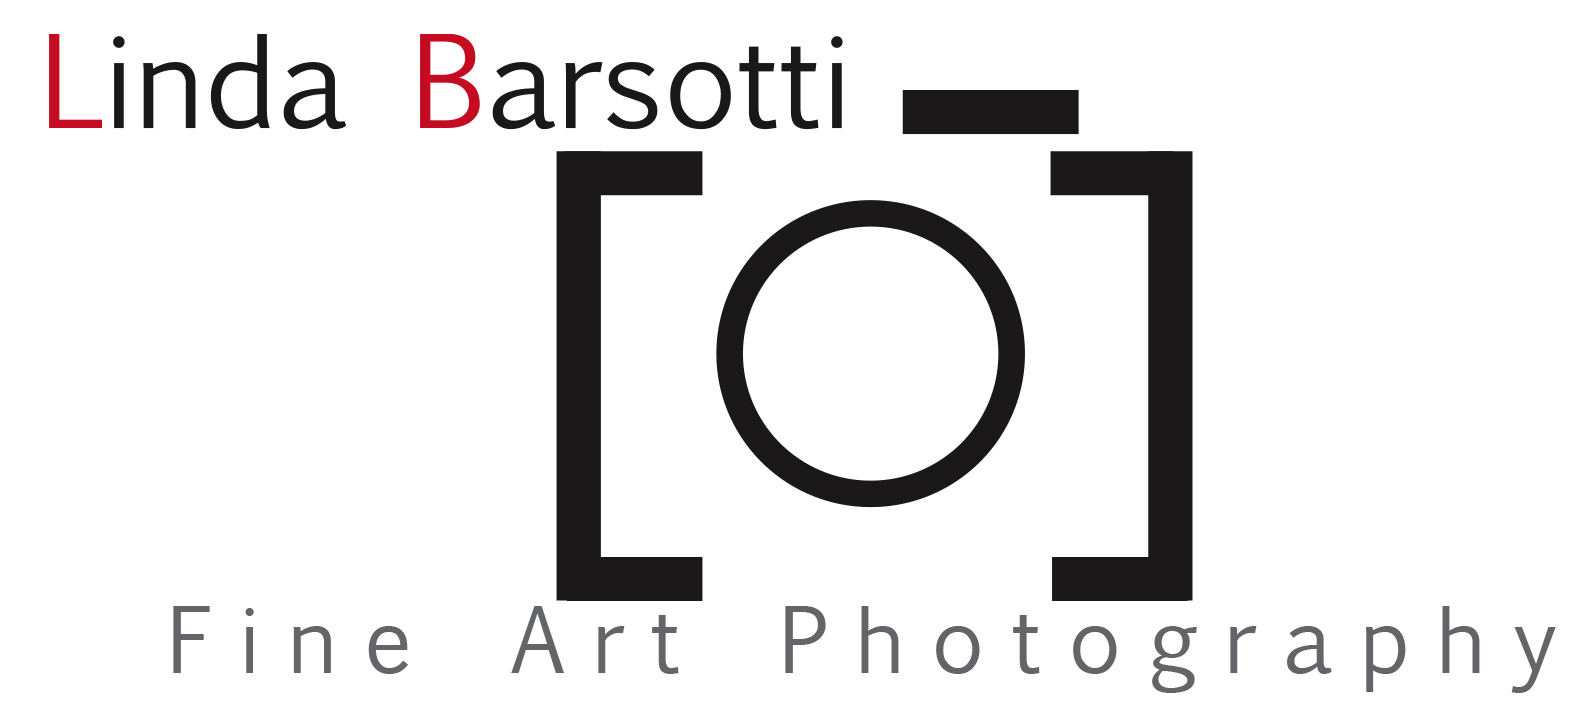 Linda Barsotti Fine Art Photography